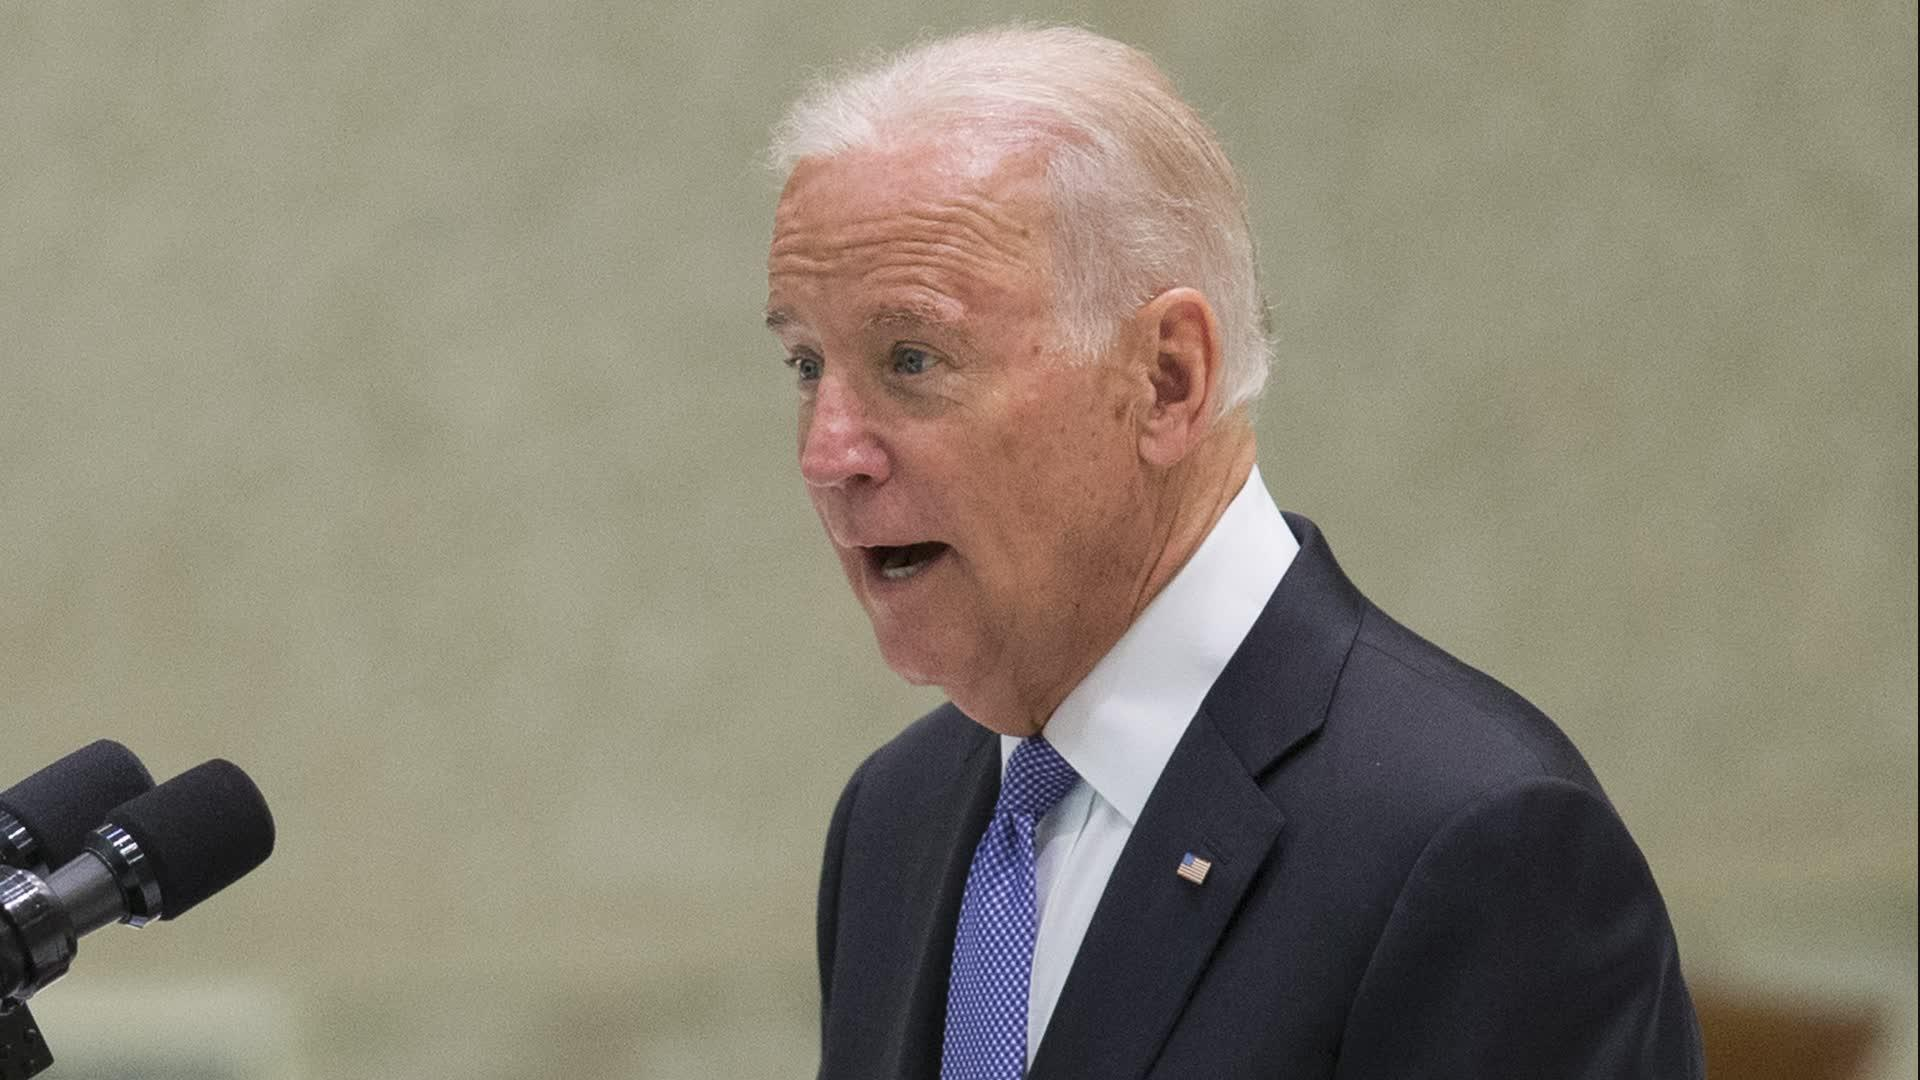 Biden Calls For Fight Against Cancer at Vatican